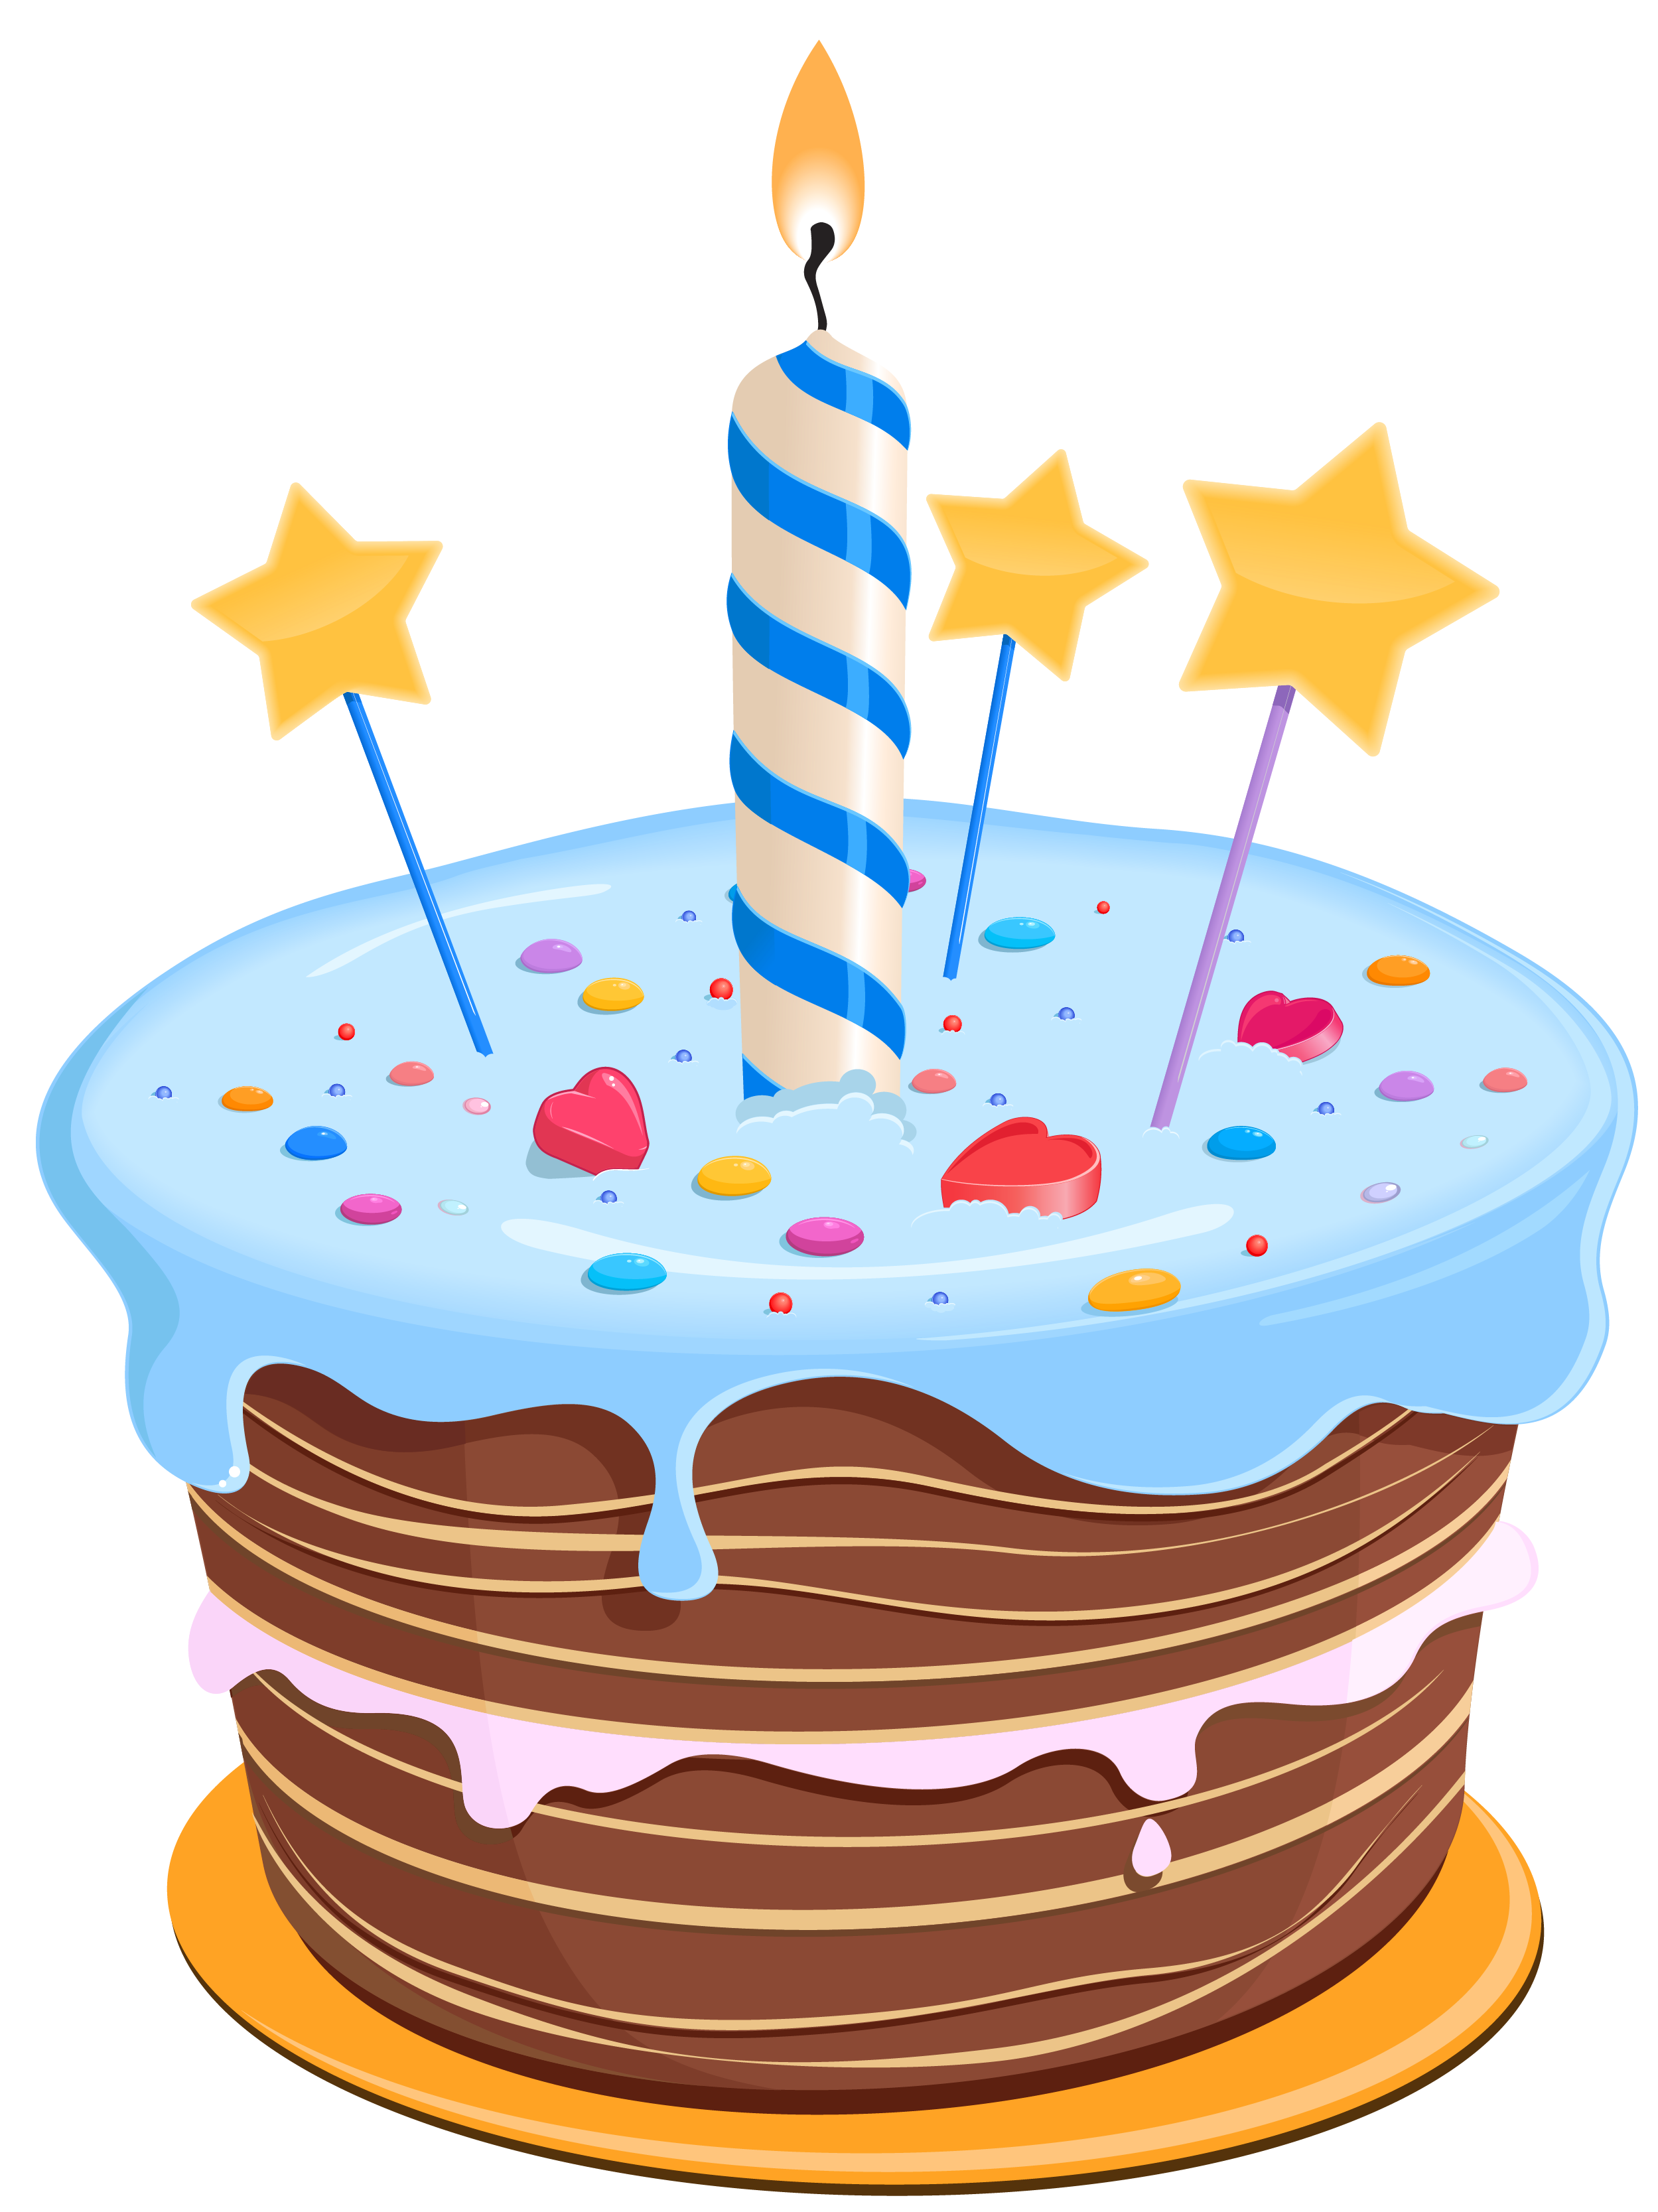 Clip Art Of Birthday Cake : Birthday Cake Pictures Clip Art - Cliparts.co